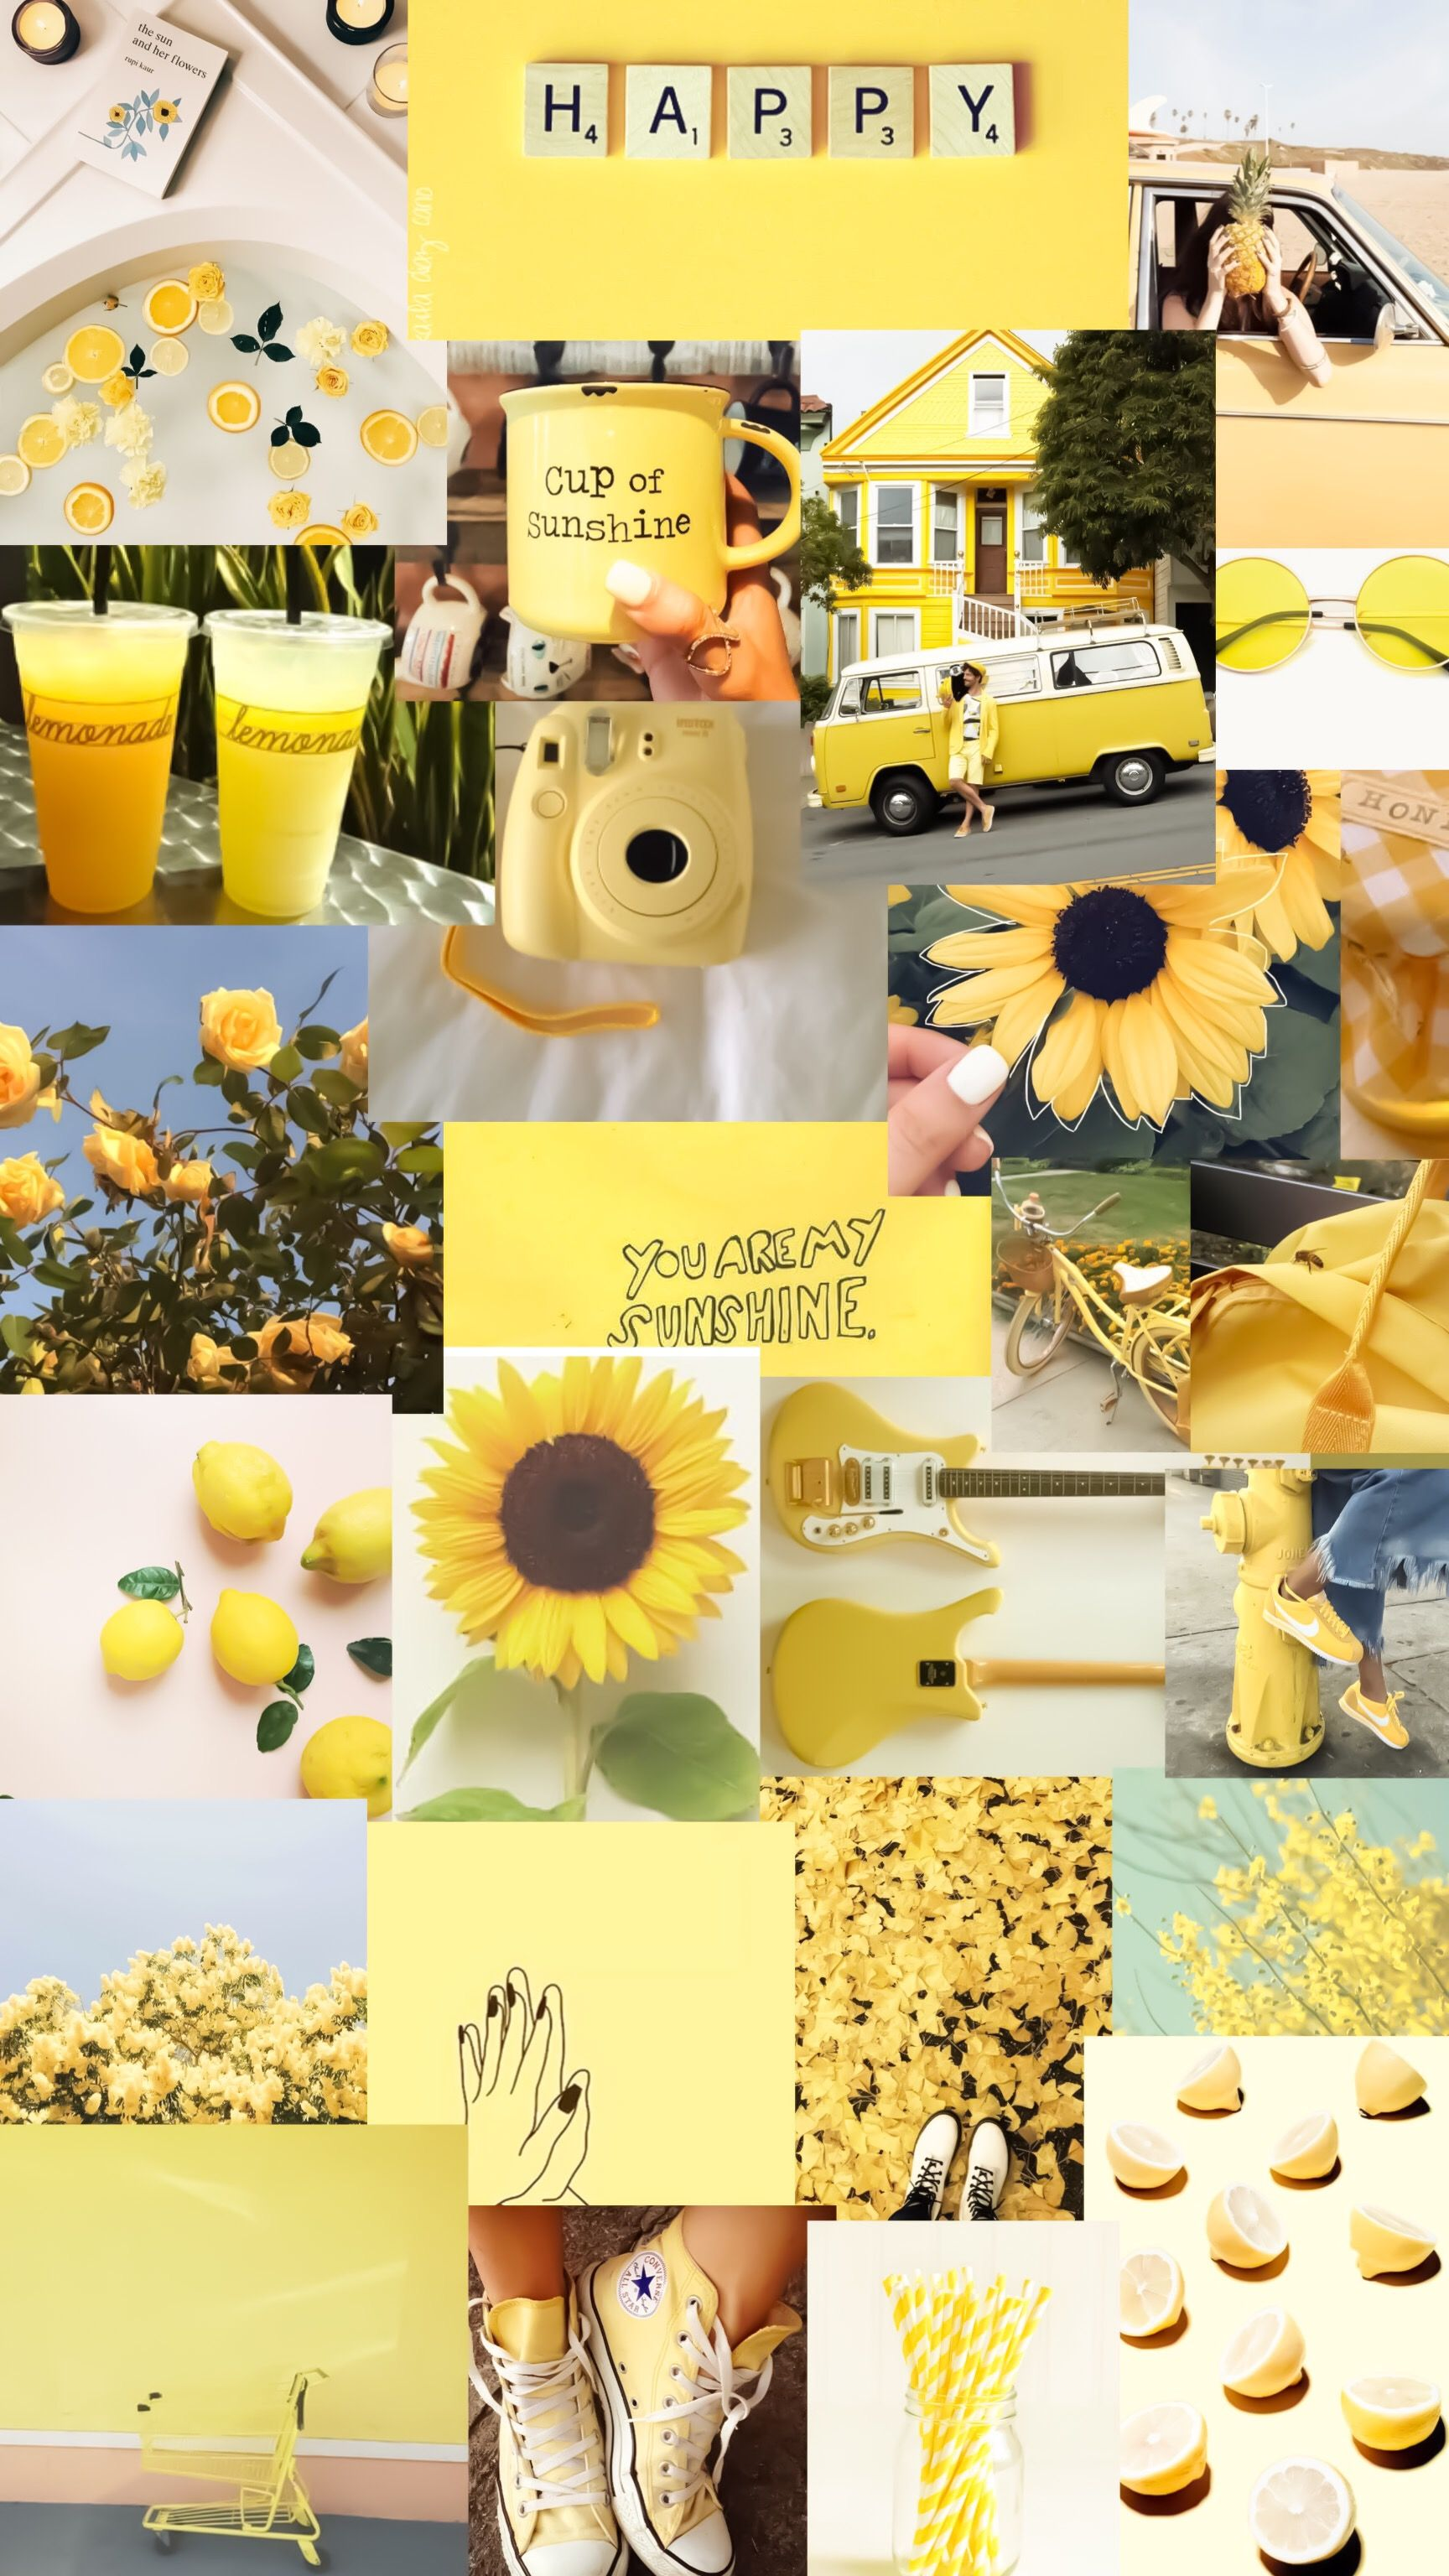 Pin By Fuka Miwa On Homemade Collage Iphone Wallpaper Tumblr Aesthetic Aesthetic Iphone Wallpaper Iphone Wallpaper Yellow